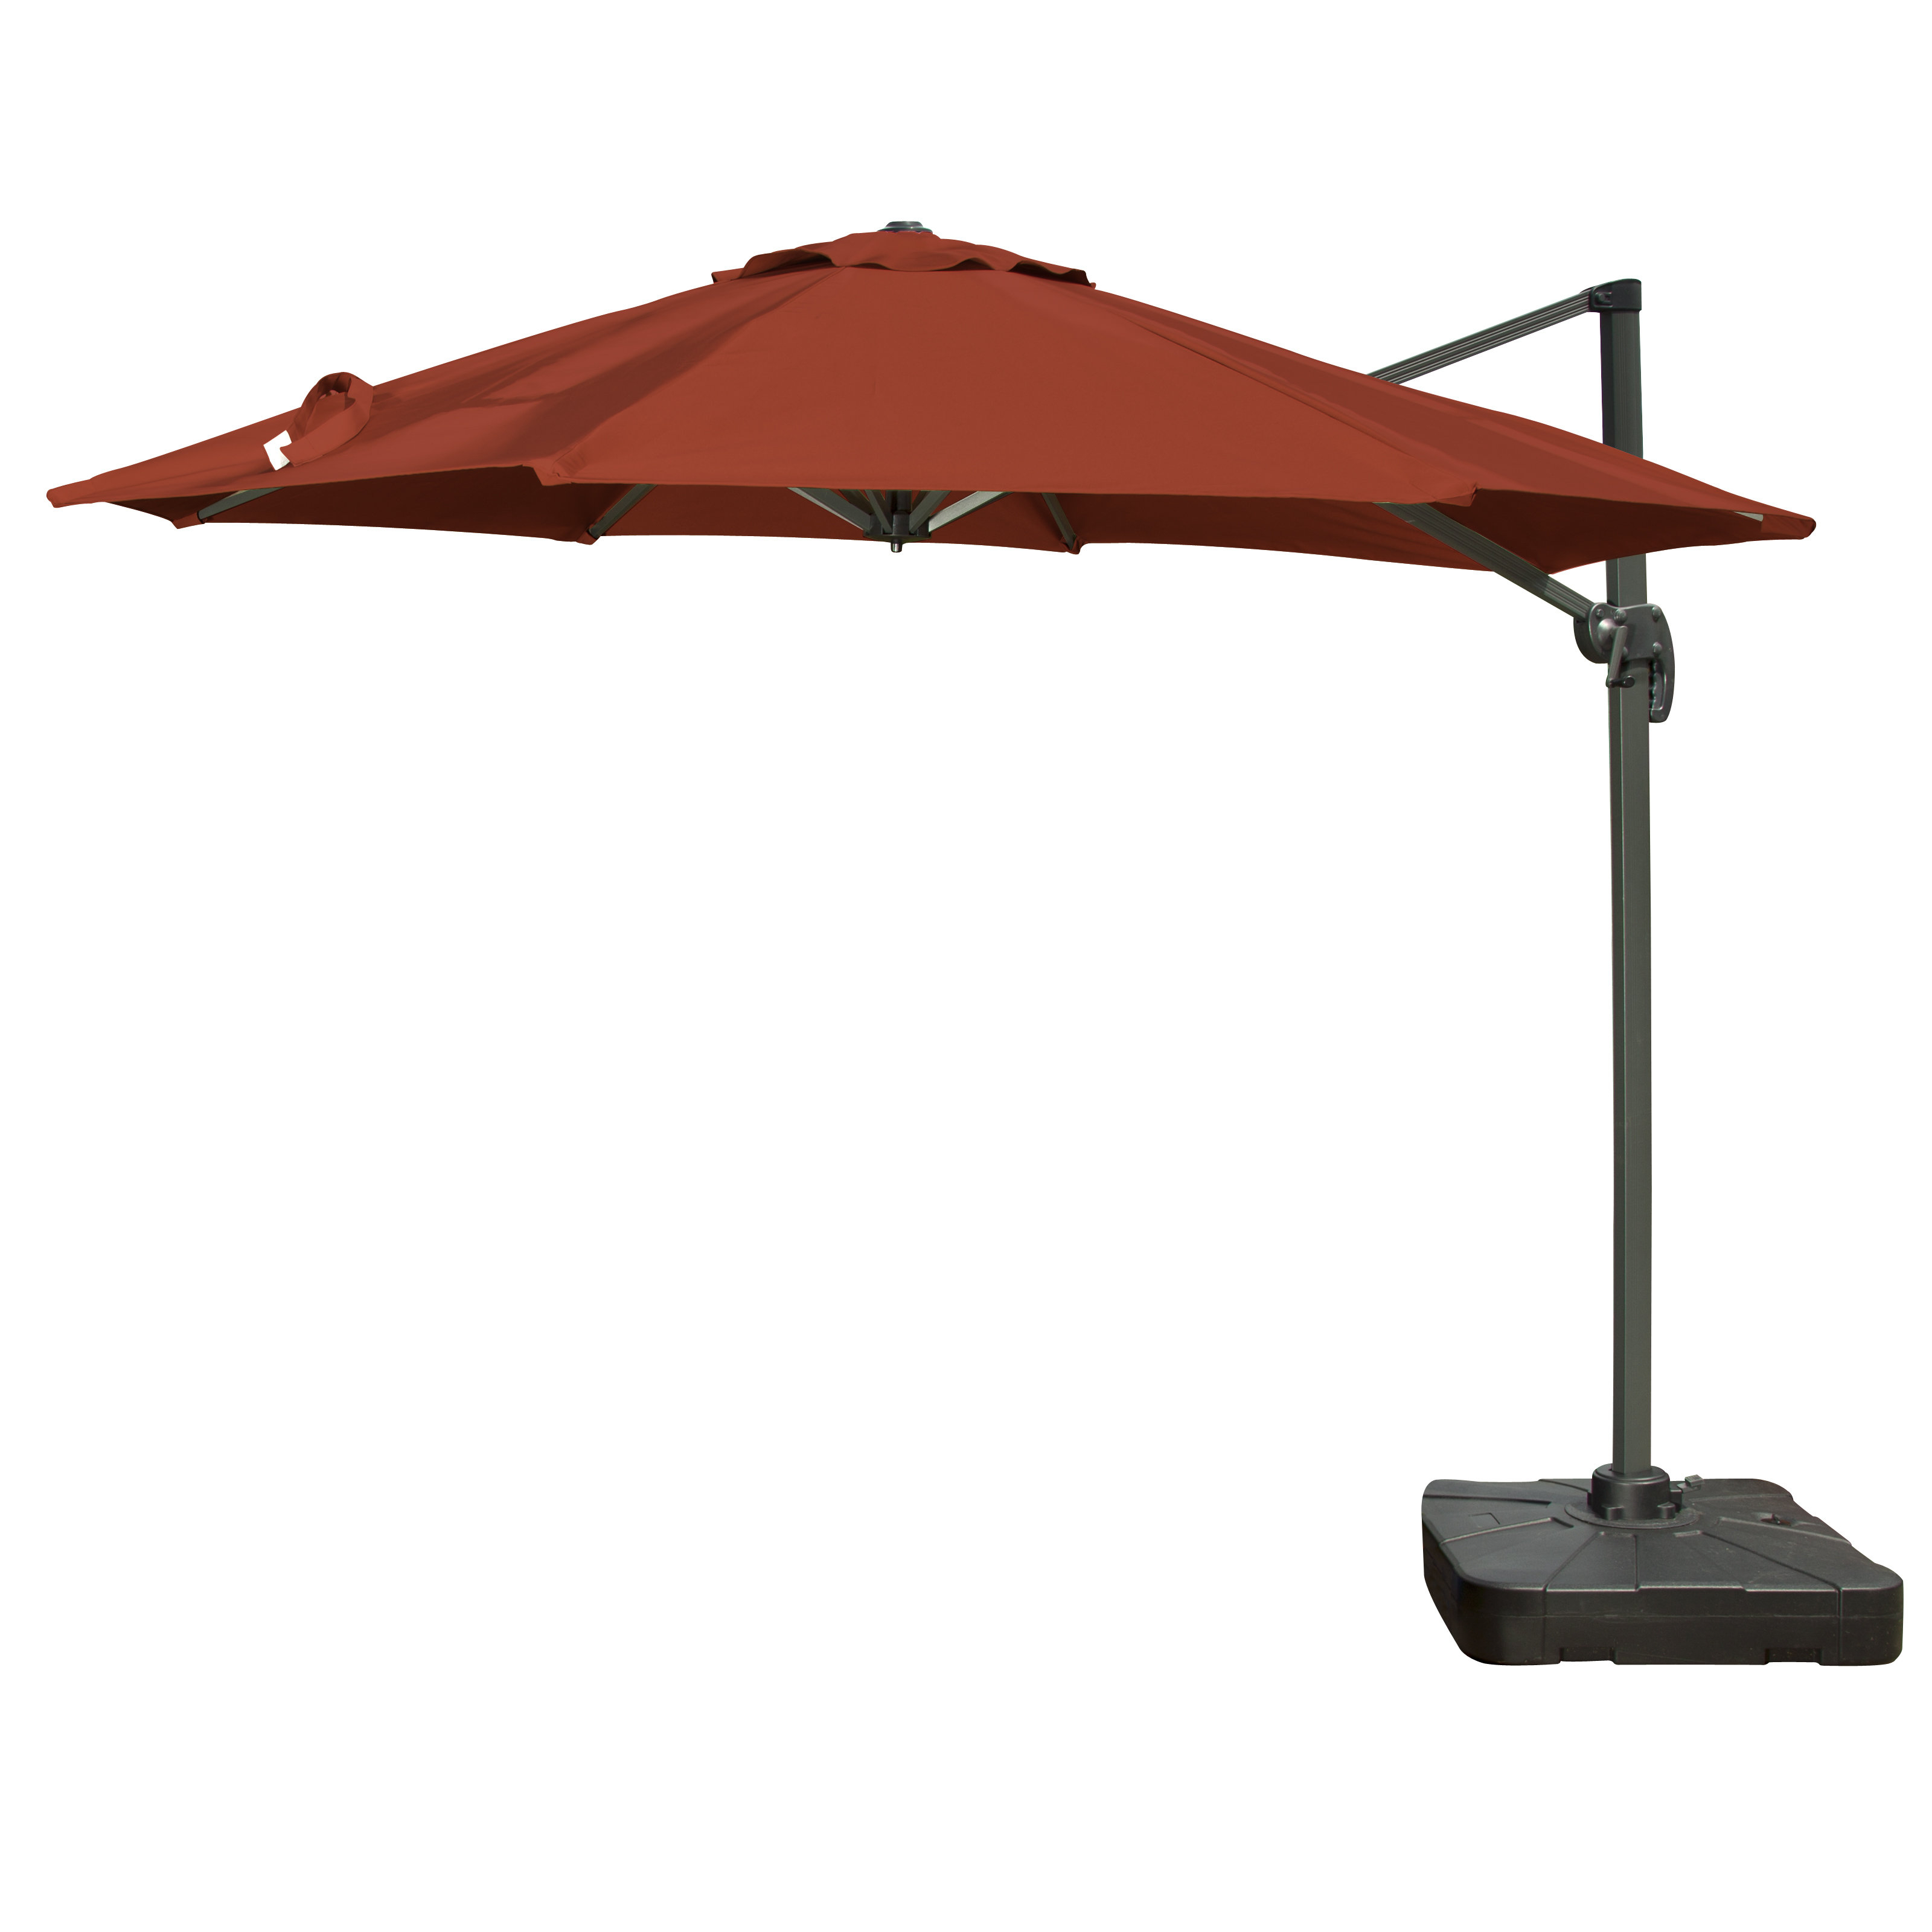 Kedzie Outdoor Cantilever Umbrellas Intended For Current Ceri (View 4 of 20)